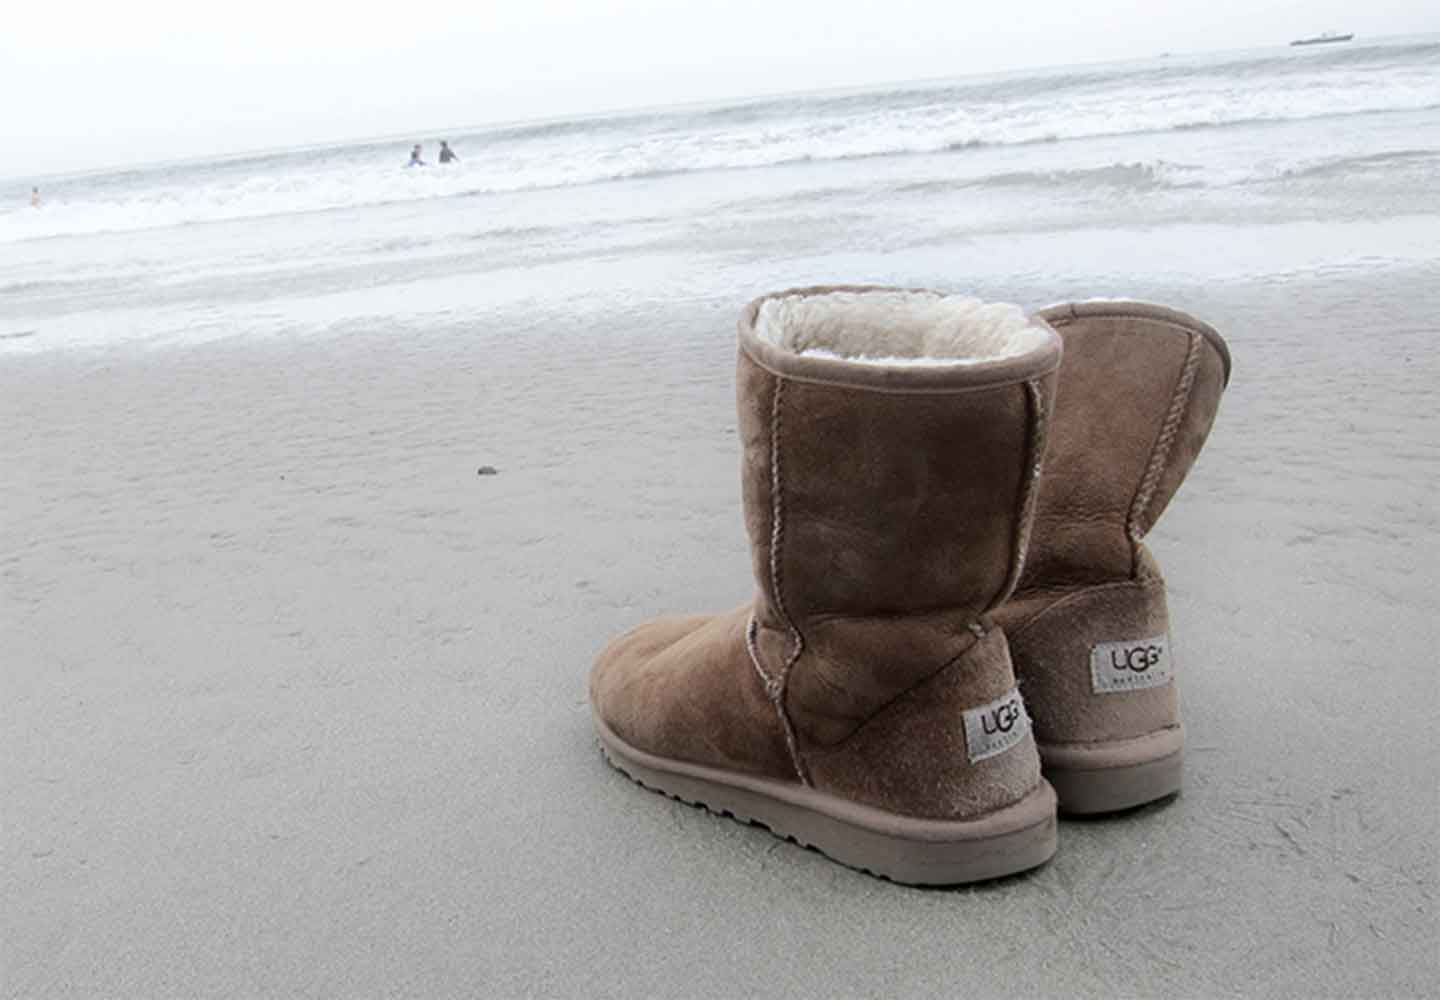 Ugg classic boots on a beach